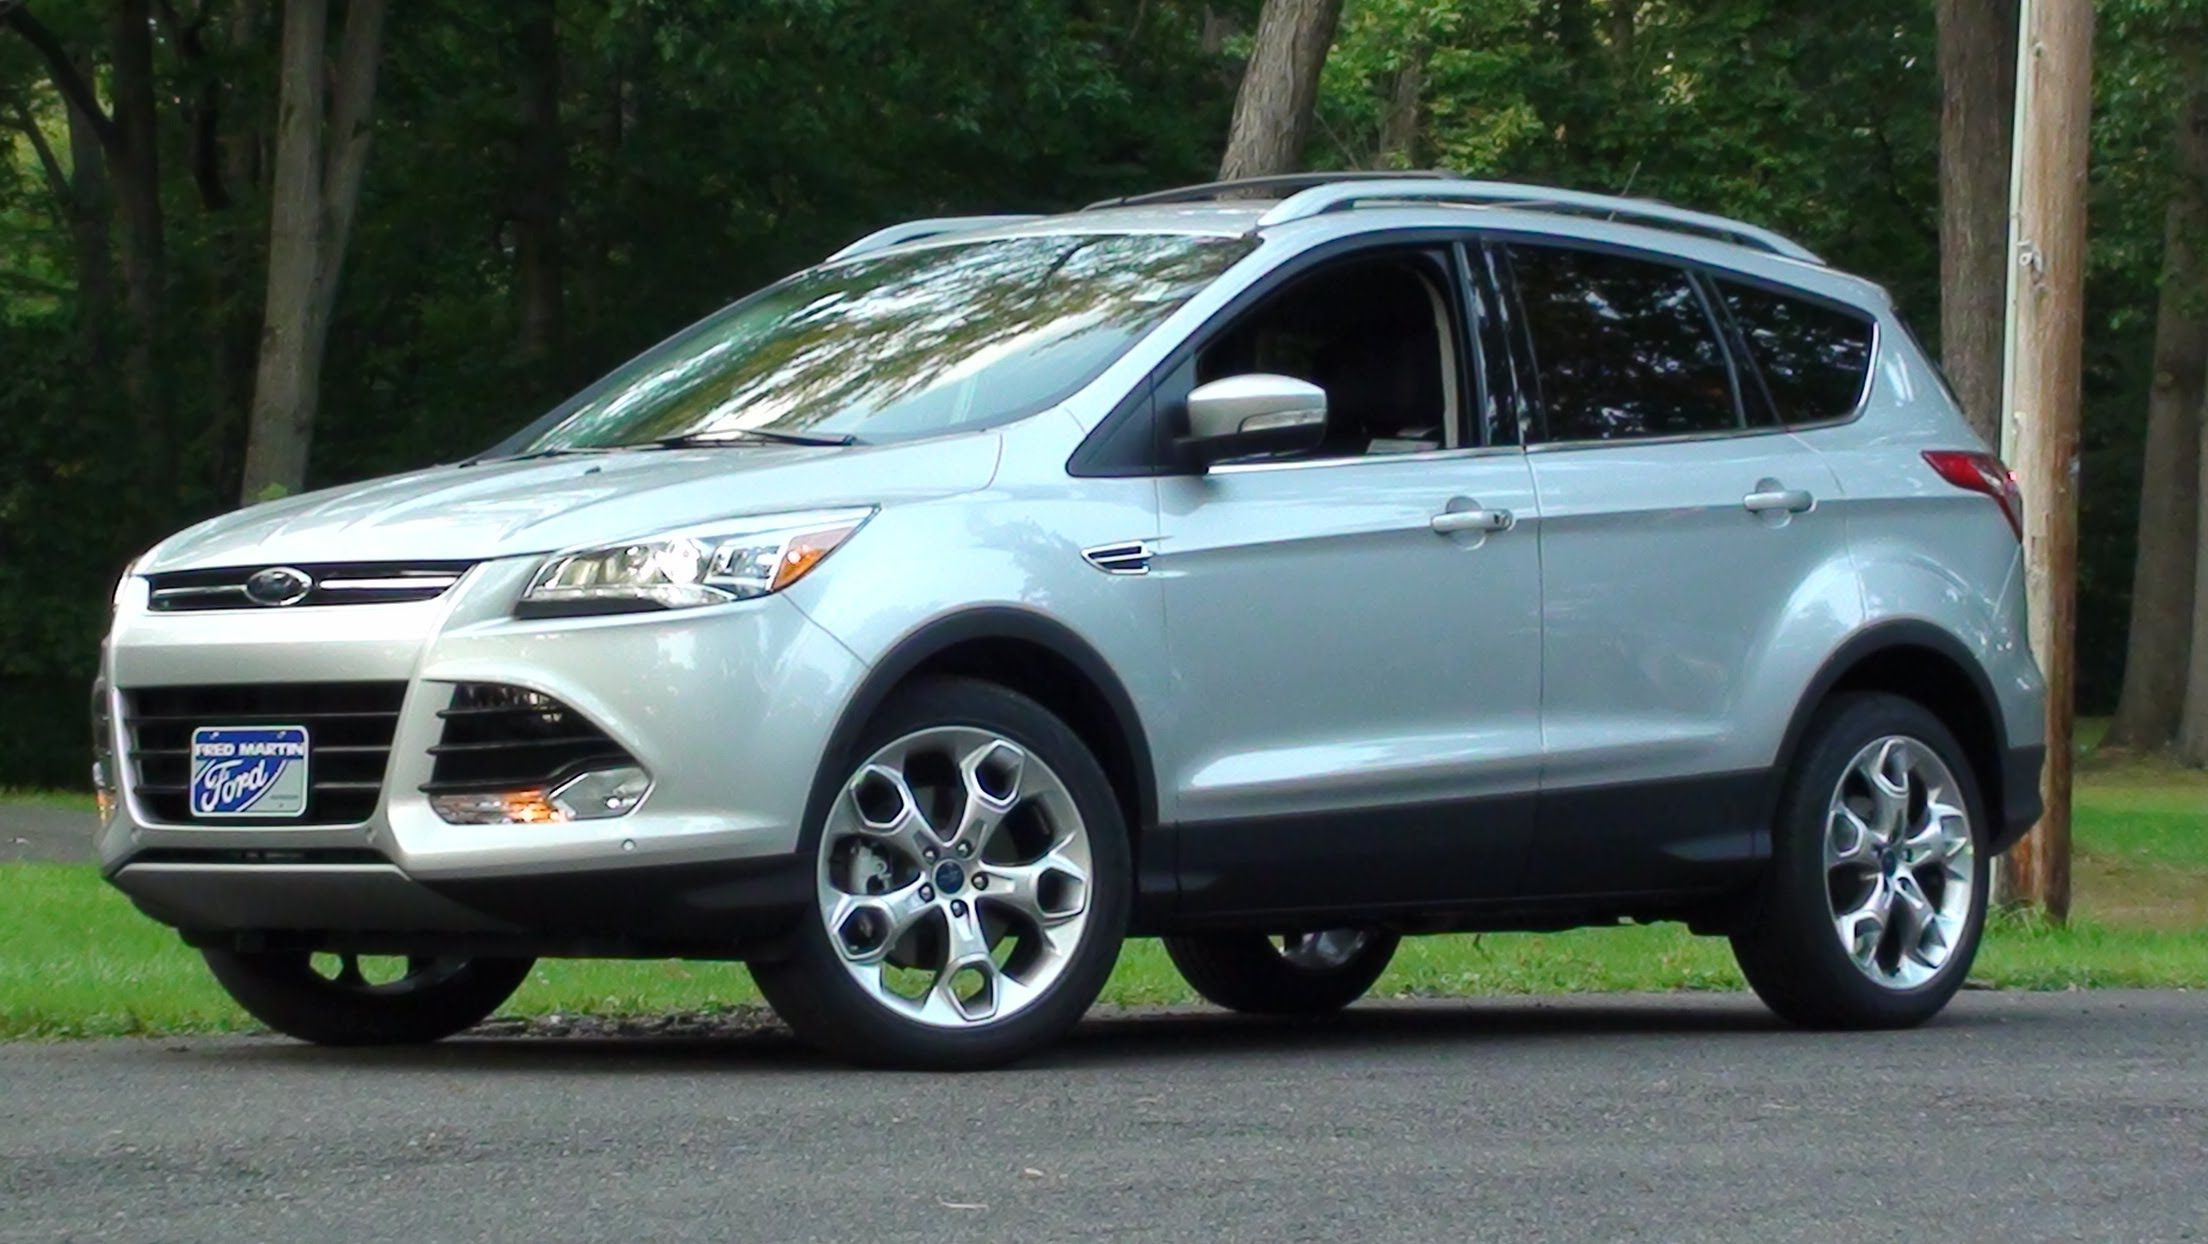 Cool ford escape alarm goes off featured car pinterest suvs and ford